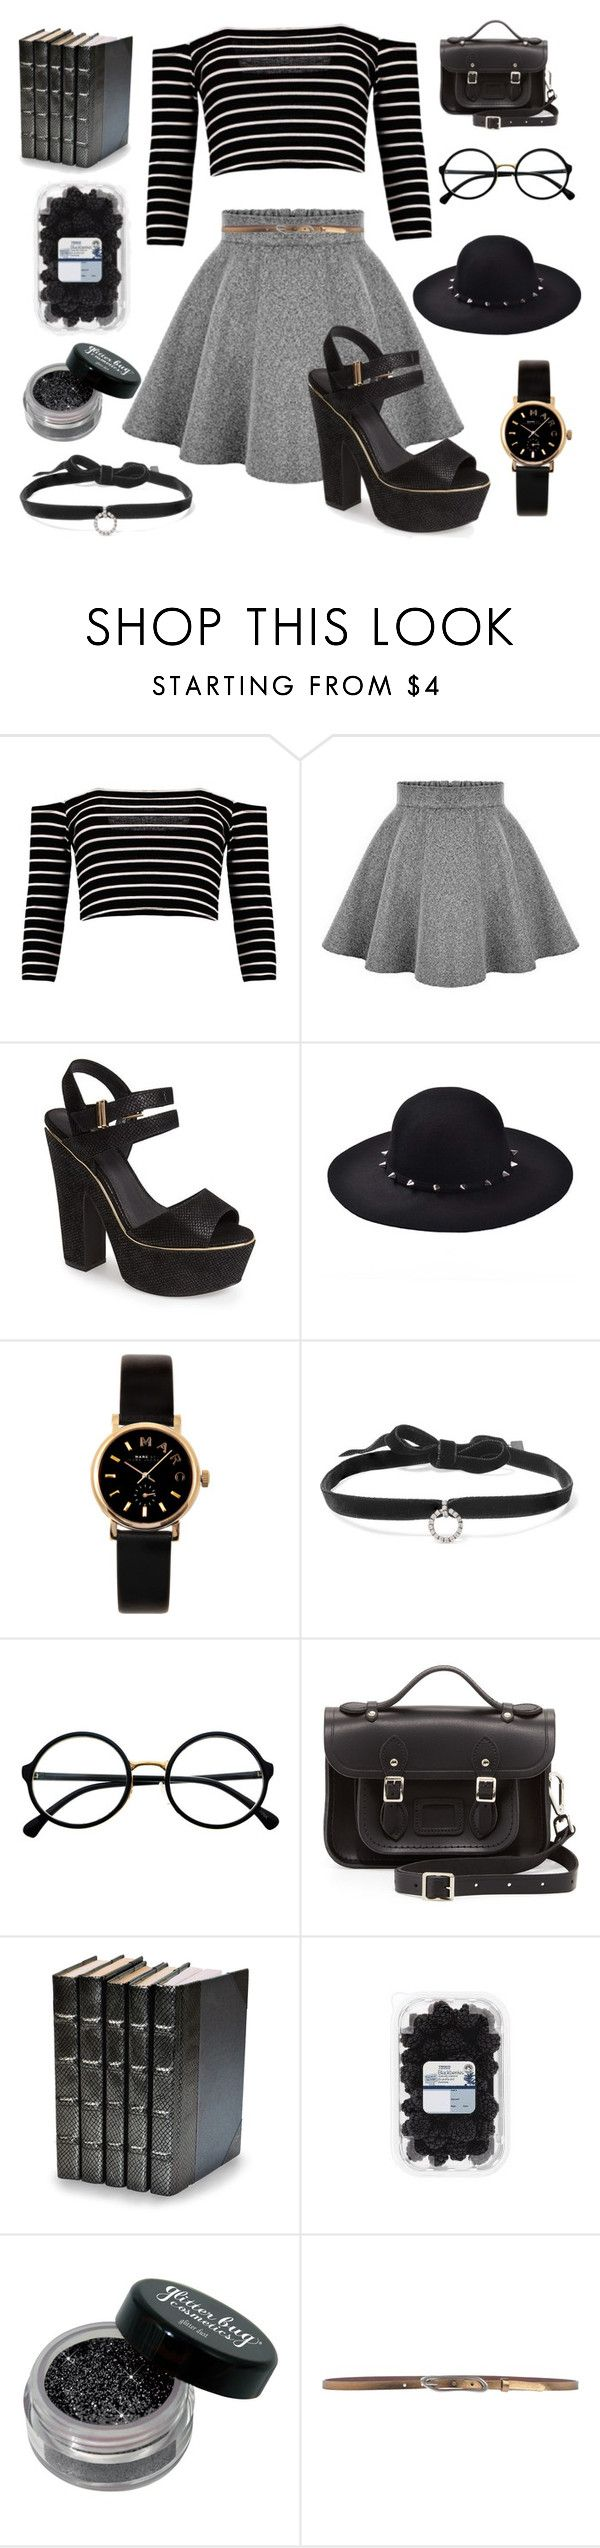 """""""You're a miracle ☄ a miracle 🌸"""" by violenceinsilence ❤ liked on Polyvore featuring Boohoo, Topshop, Marc by Marc Jacobs, DANNIJO, Retrò, The Cambridge Satchel Company, Decorative Leather Books and Mauro Grifoni"""